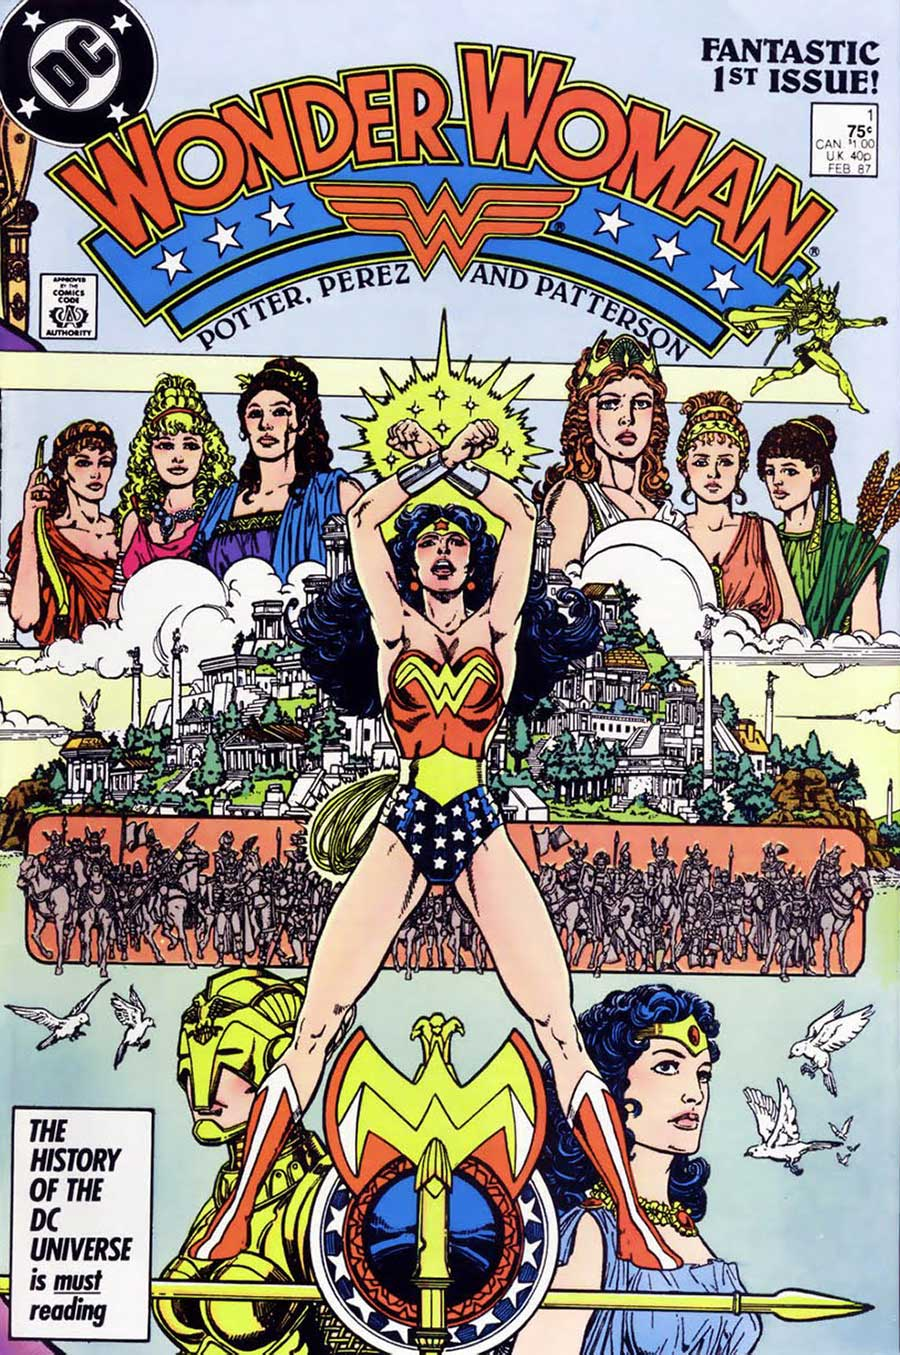 Wonder Woman (George Perez)